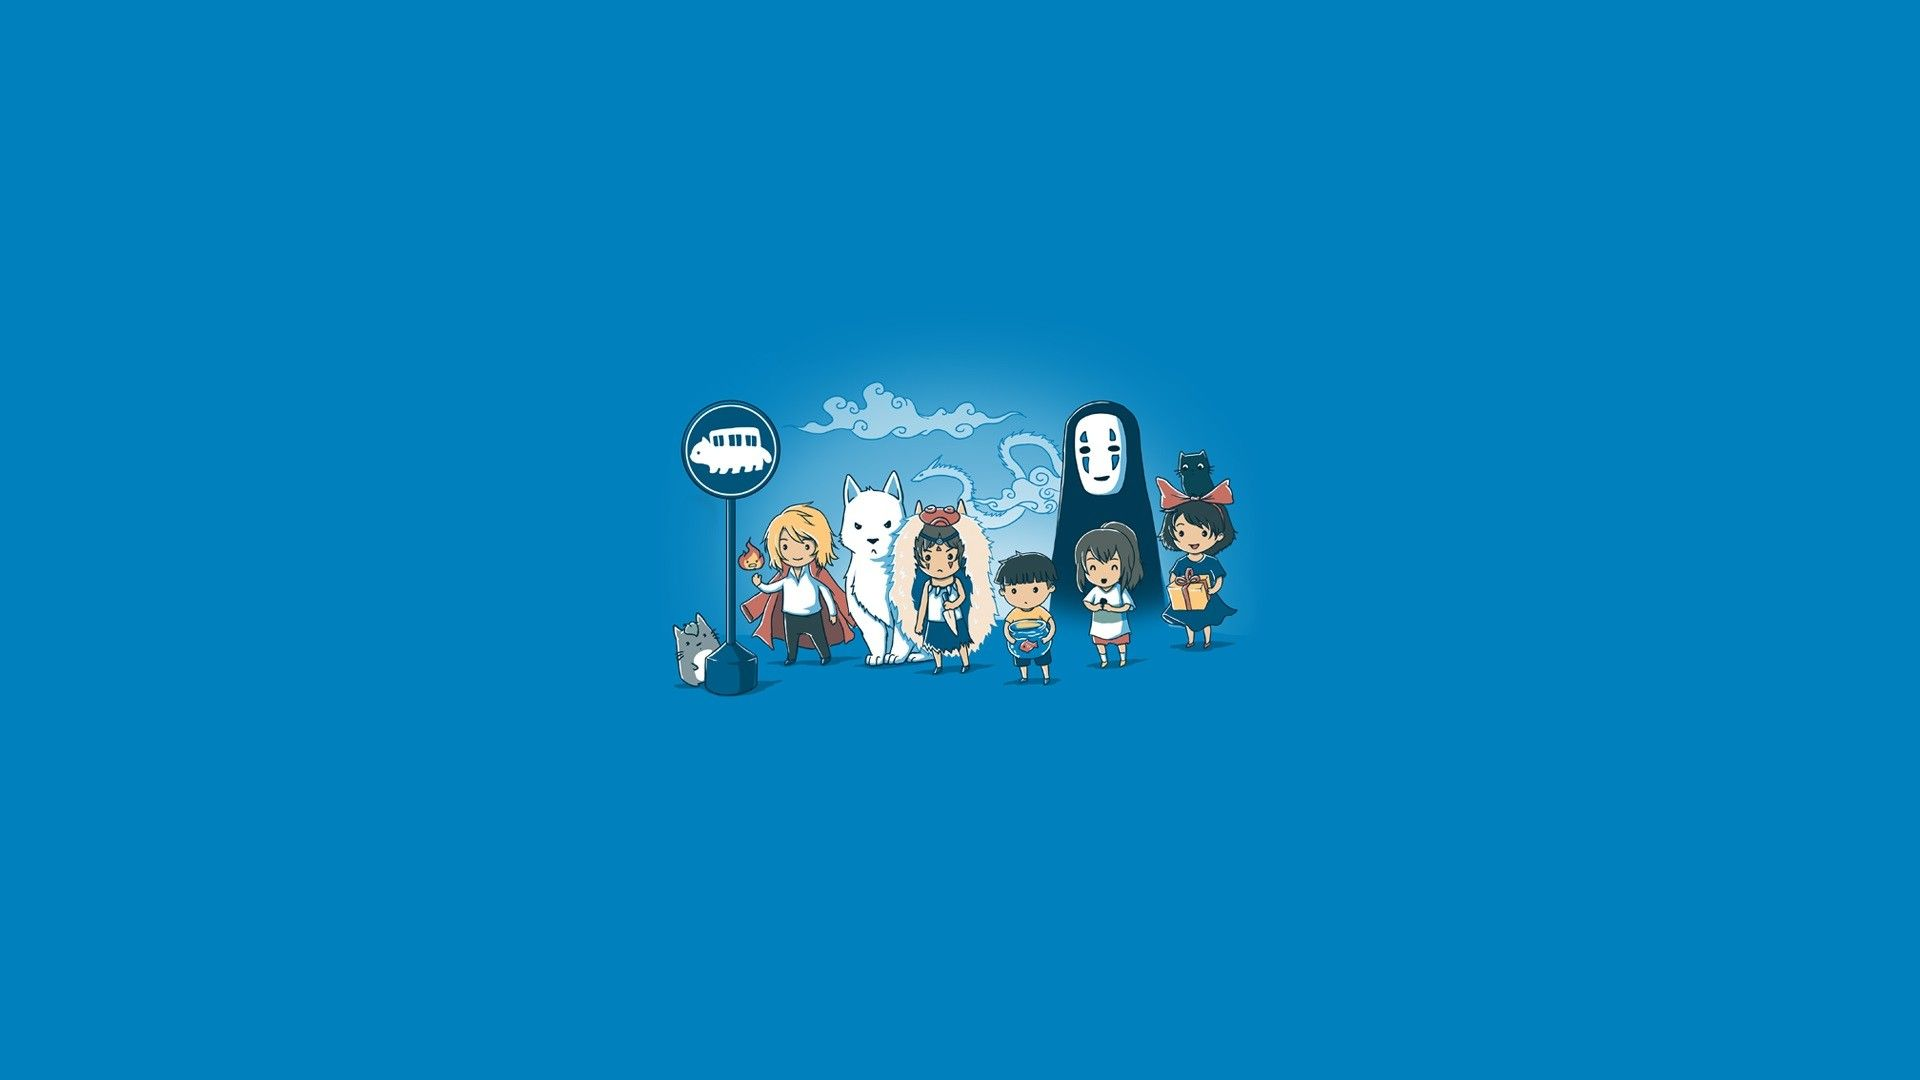 Studio Ghibli Howls Moving Castle Castle In The Sky Chihiro My Neighbor Totoro Minim Anime Wallpaper Download Hd Anime Wallpapers Spirited Away Wallpaper